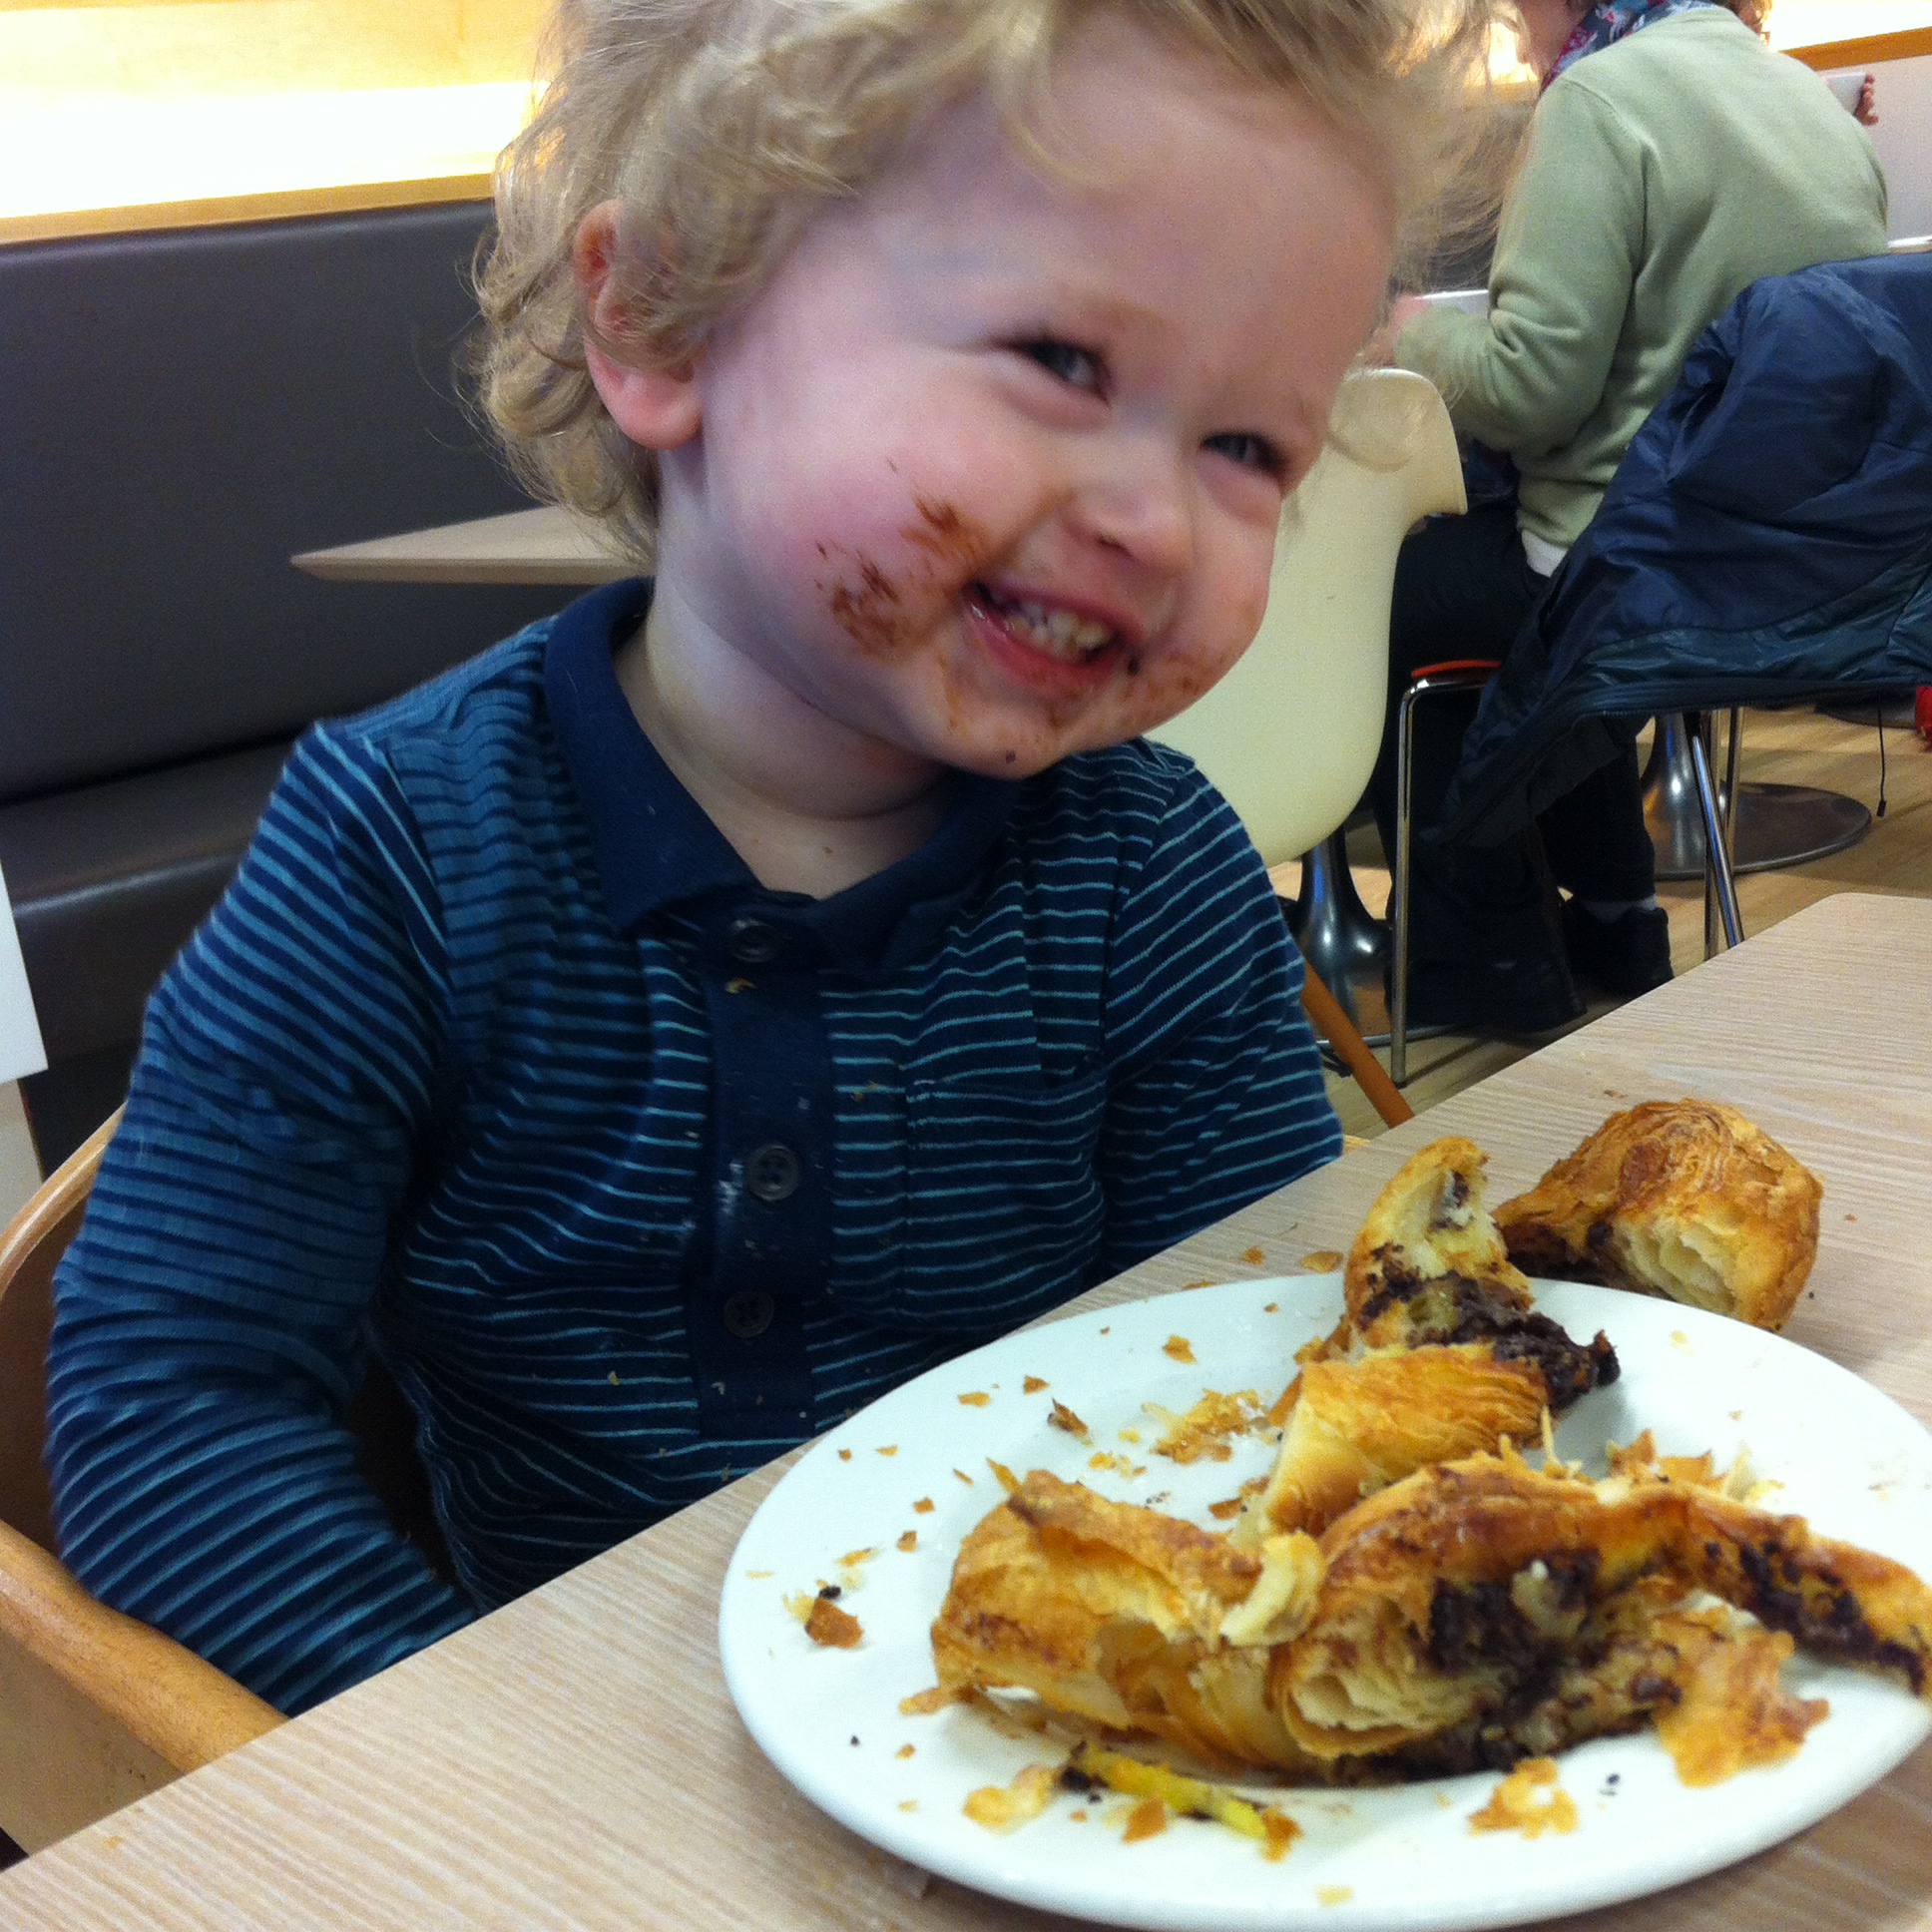 Happy days lucas smiling with chocolate all round his mouth and a chocolate twist broken up in front of him